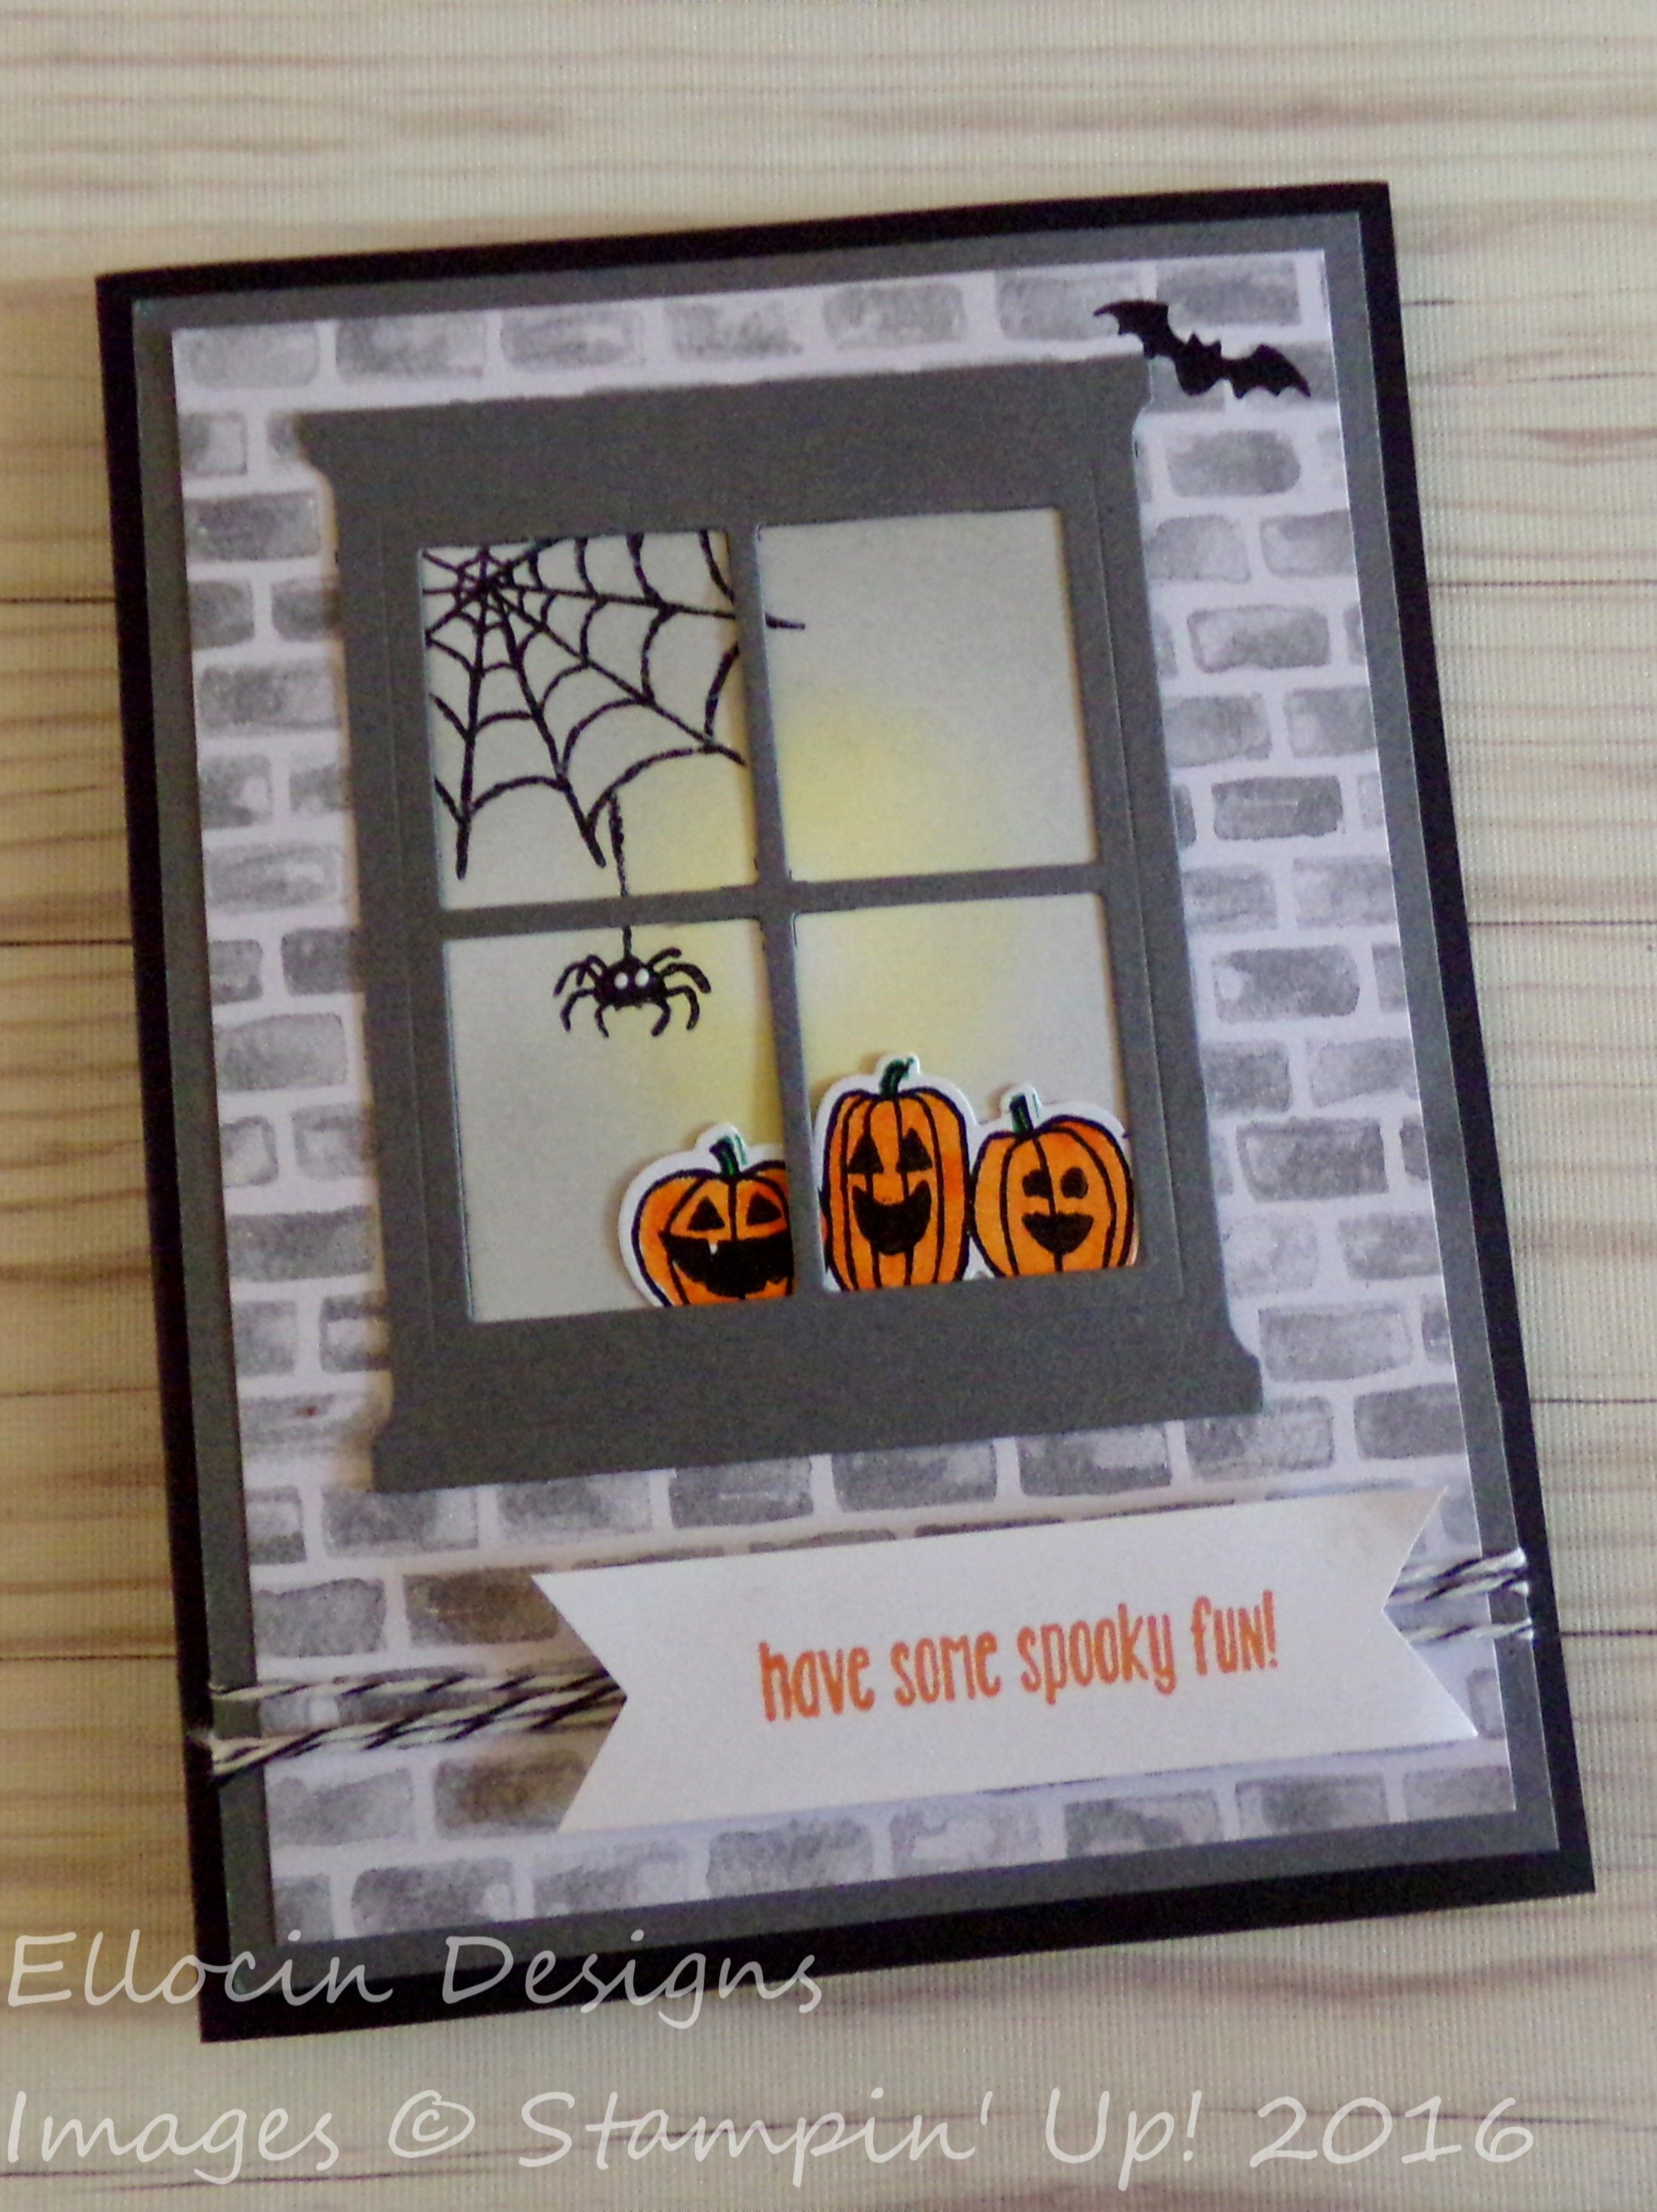 Fun Halloween Card Made With Hearth And Home Thinlits Spooky Fun Stamp Set And Halloween Night D Halloween Cards Handmade Halloween Cards Diy Halloween Cards